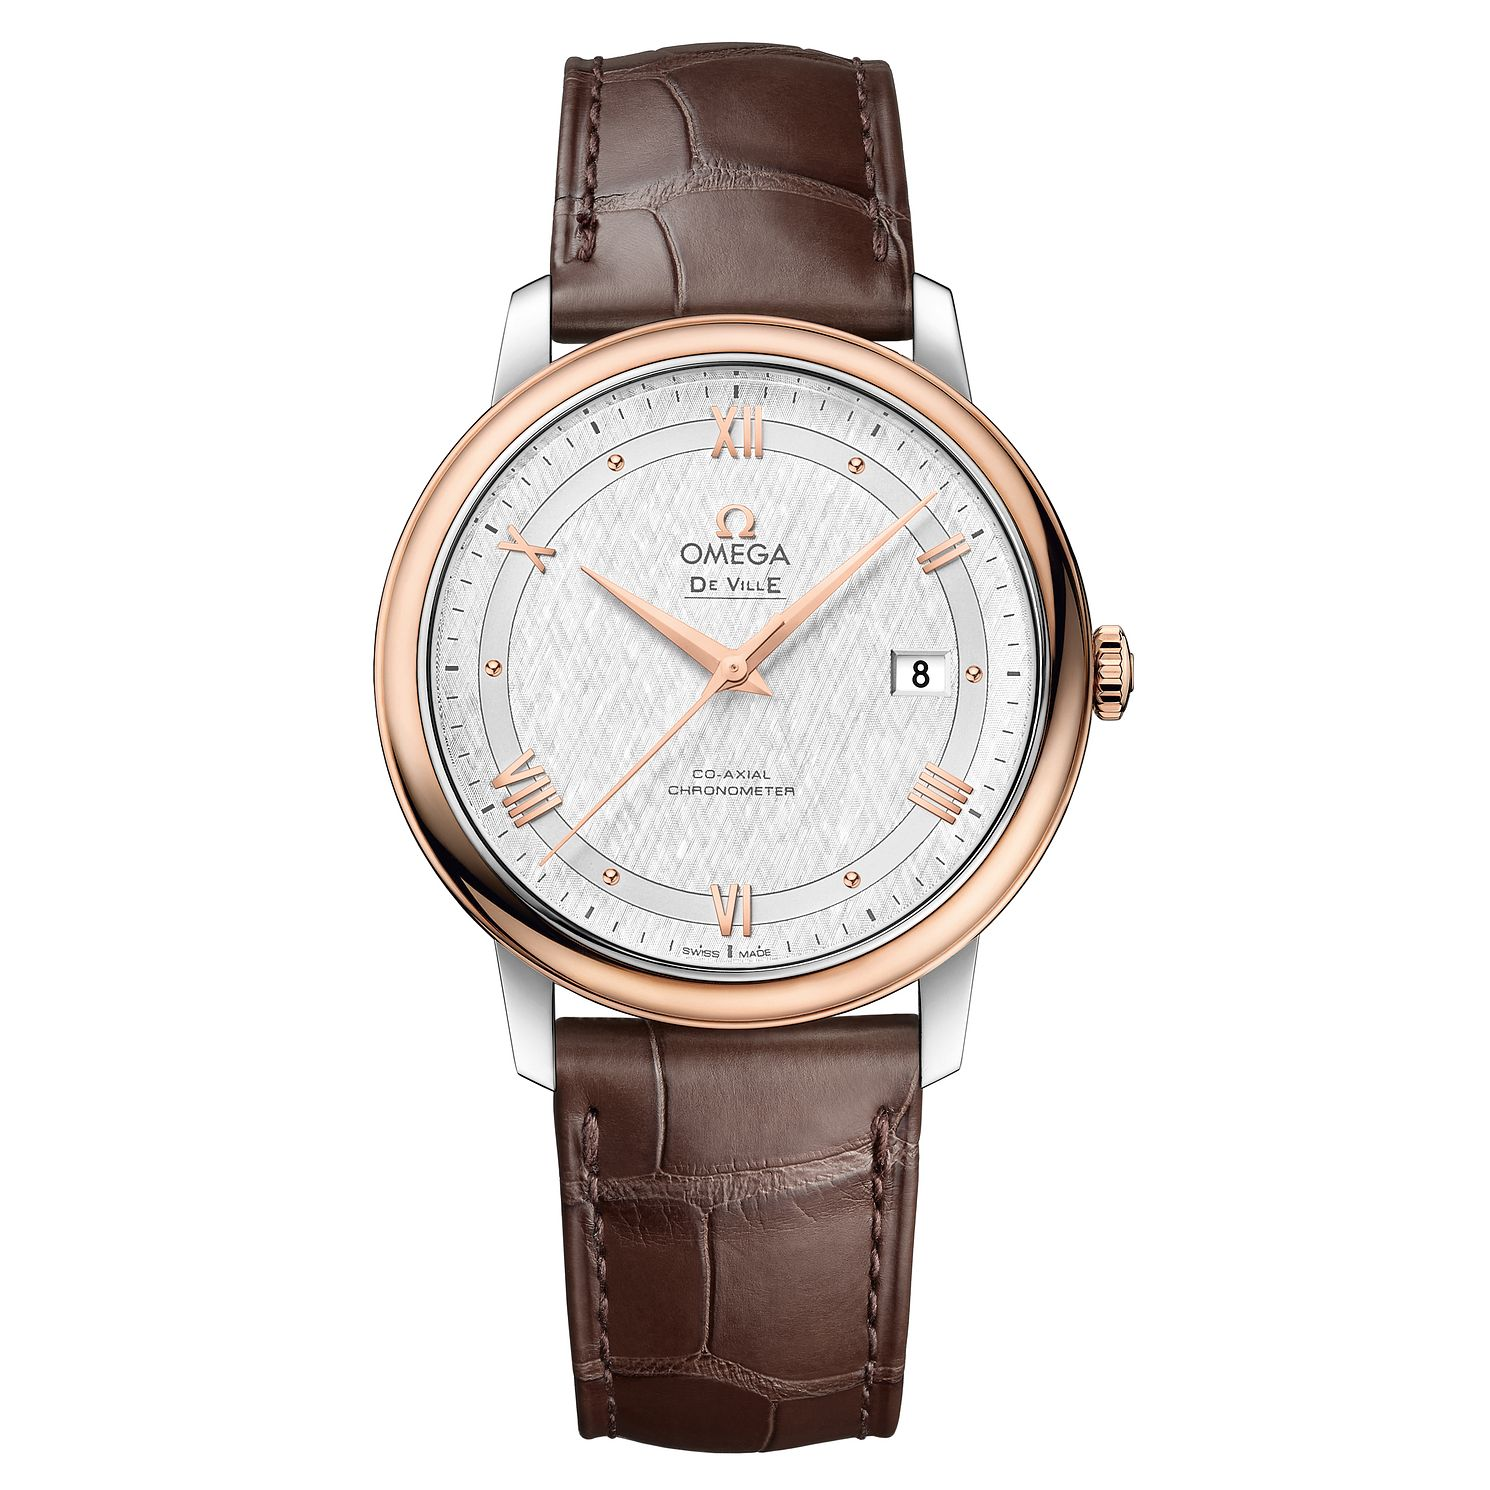 Omega De Ville Men's Rose Gold Brown Leather Strap Watch - Product number 6940242